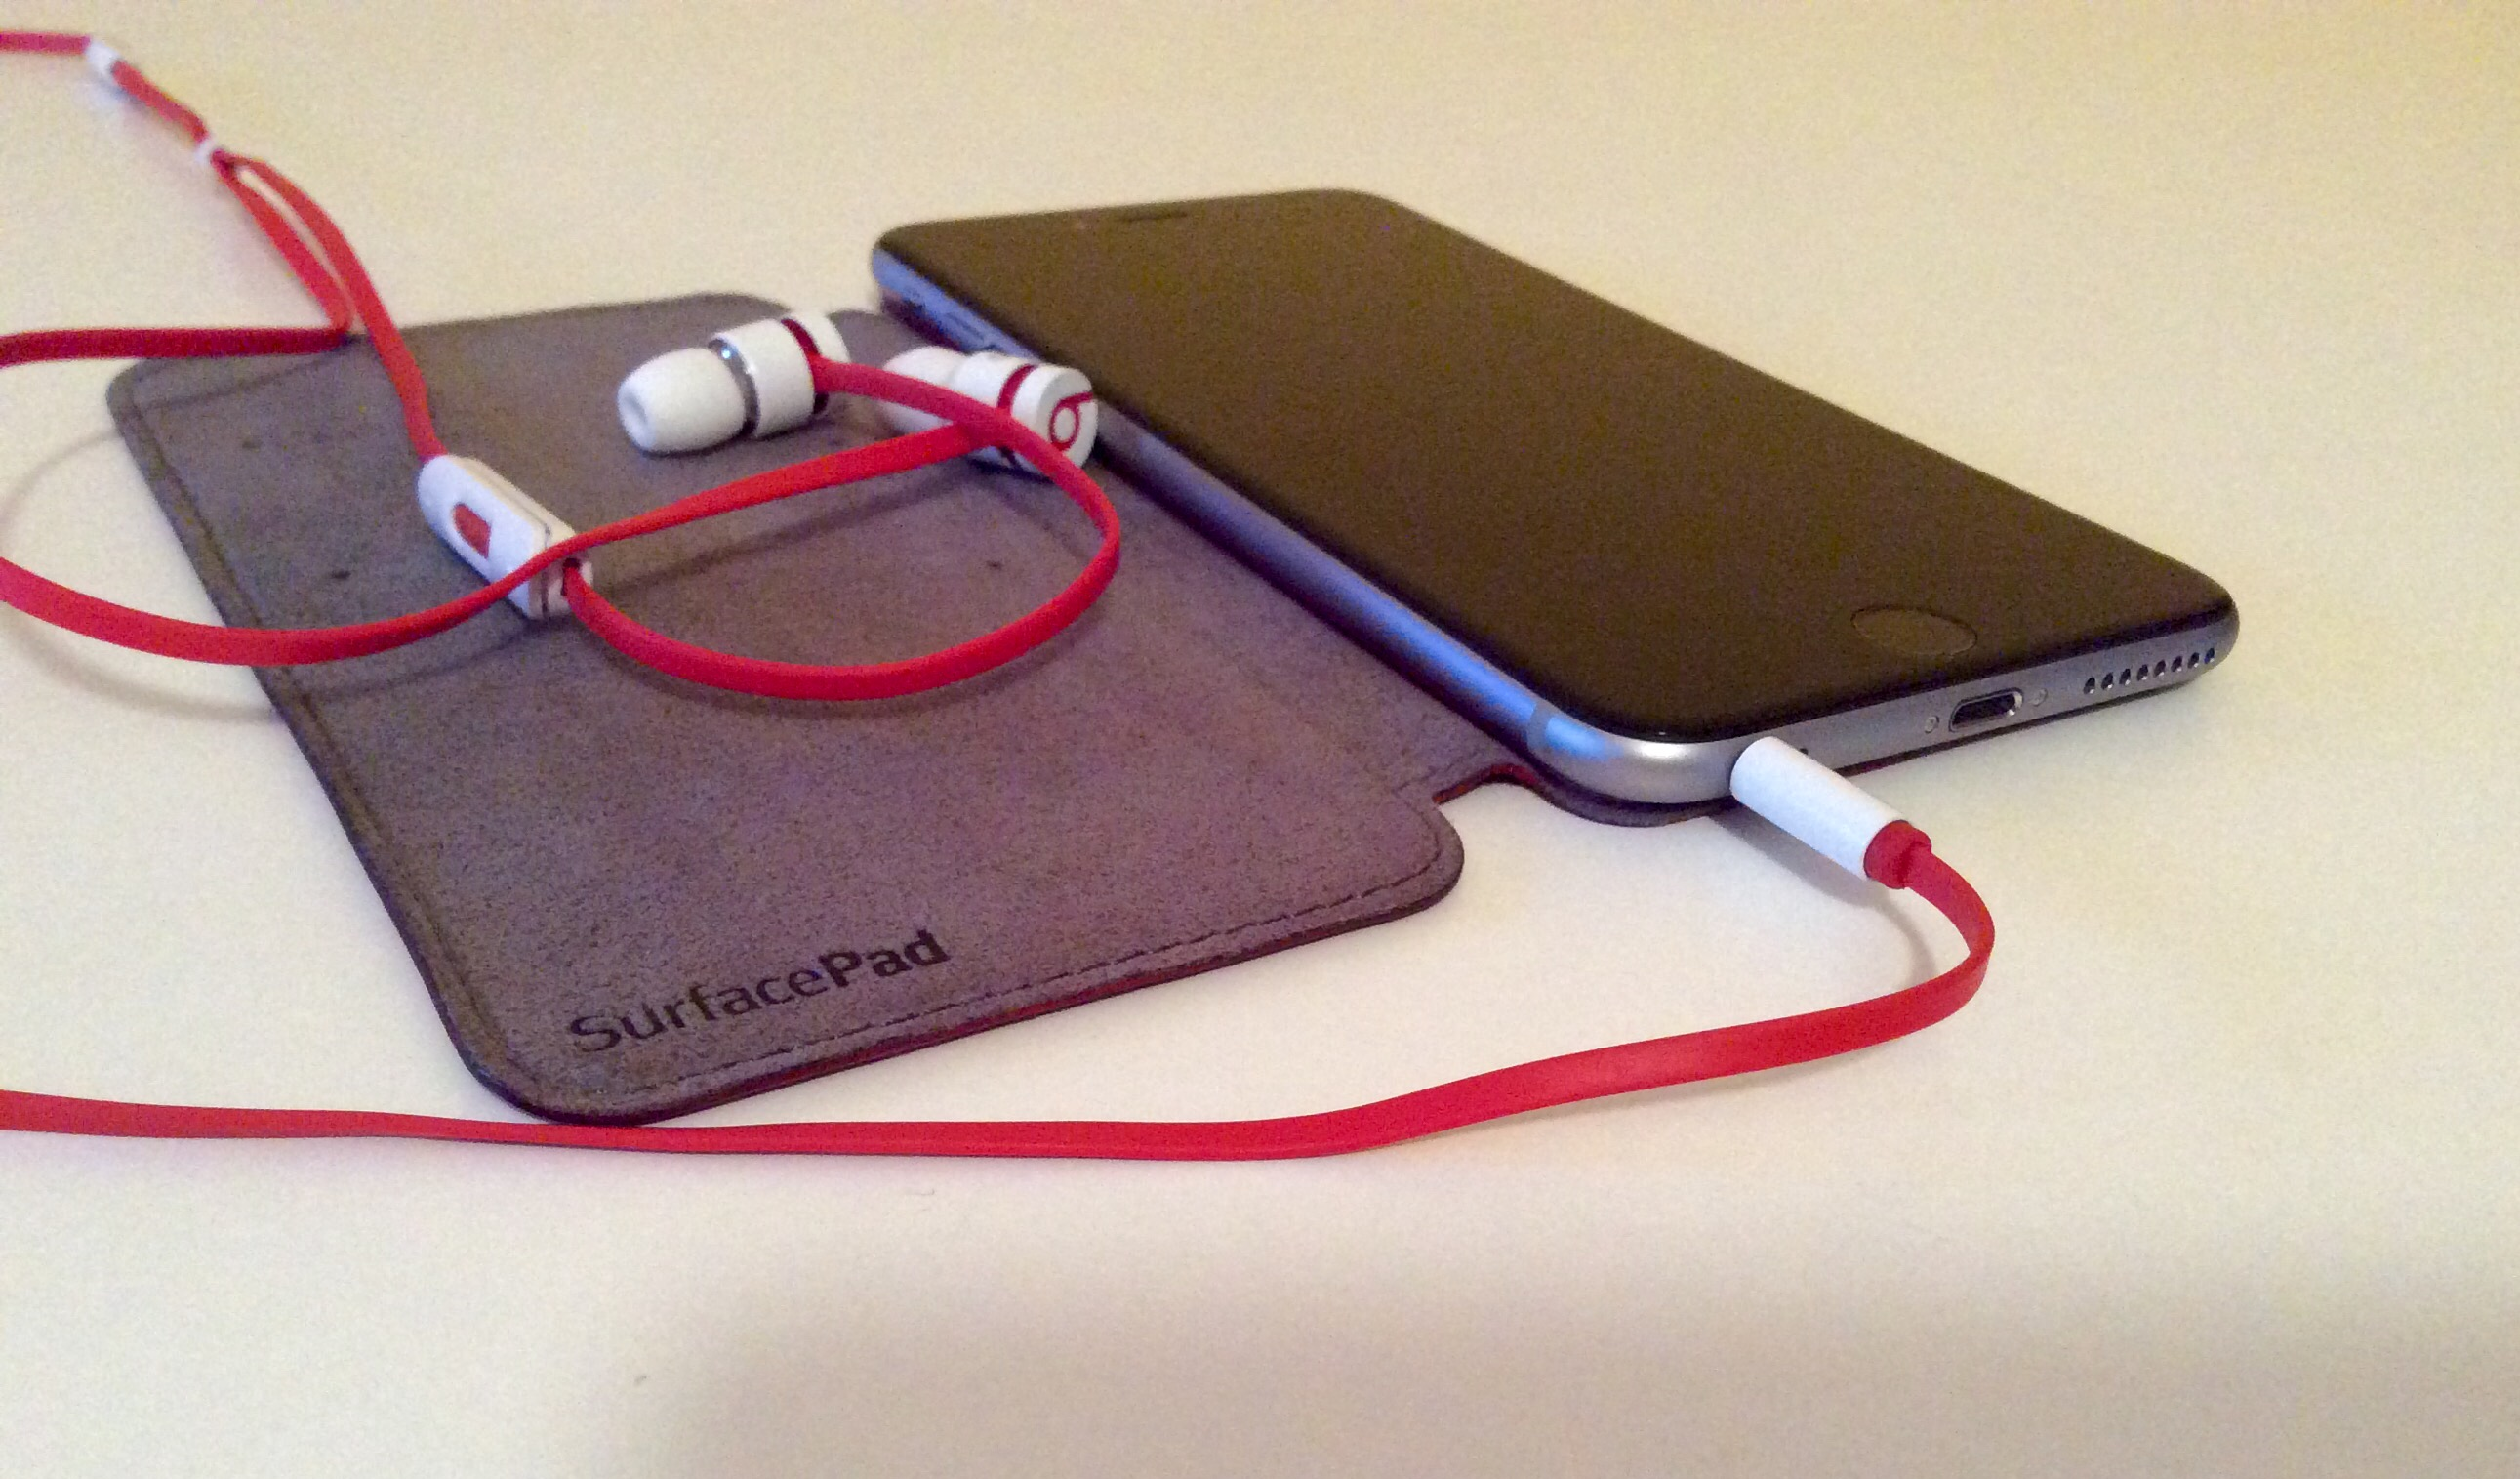 Review: Twelve South SurfacePad, a stylish jacket for your iPhone 6 and iPhone 6 Plus